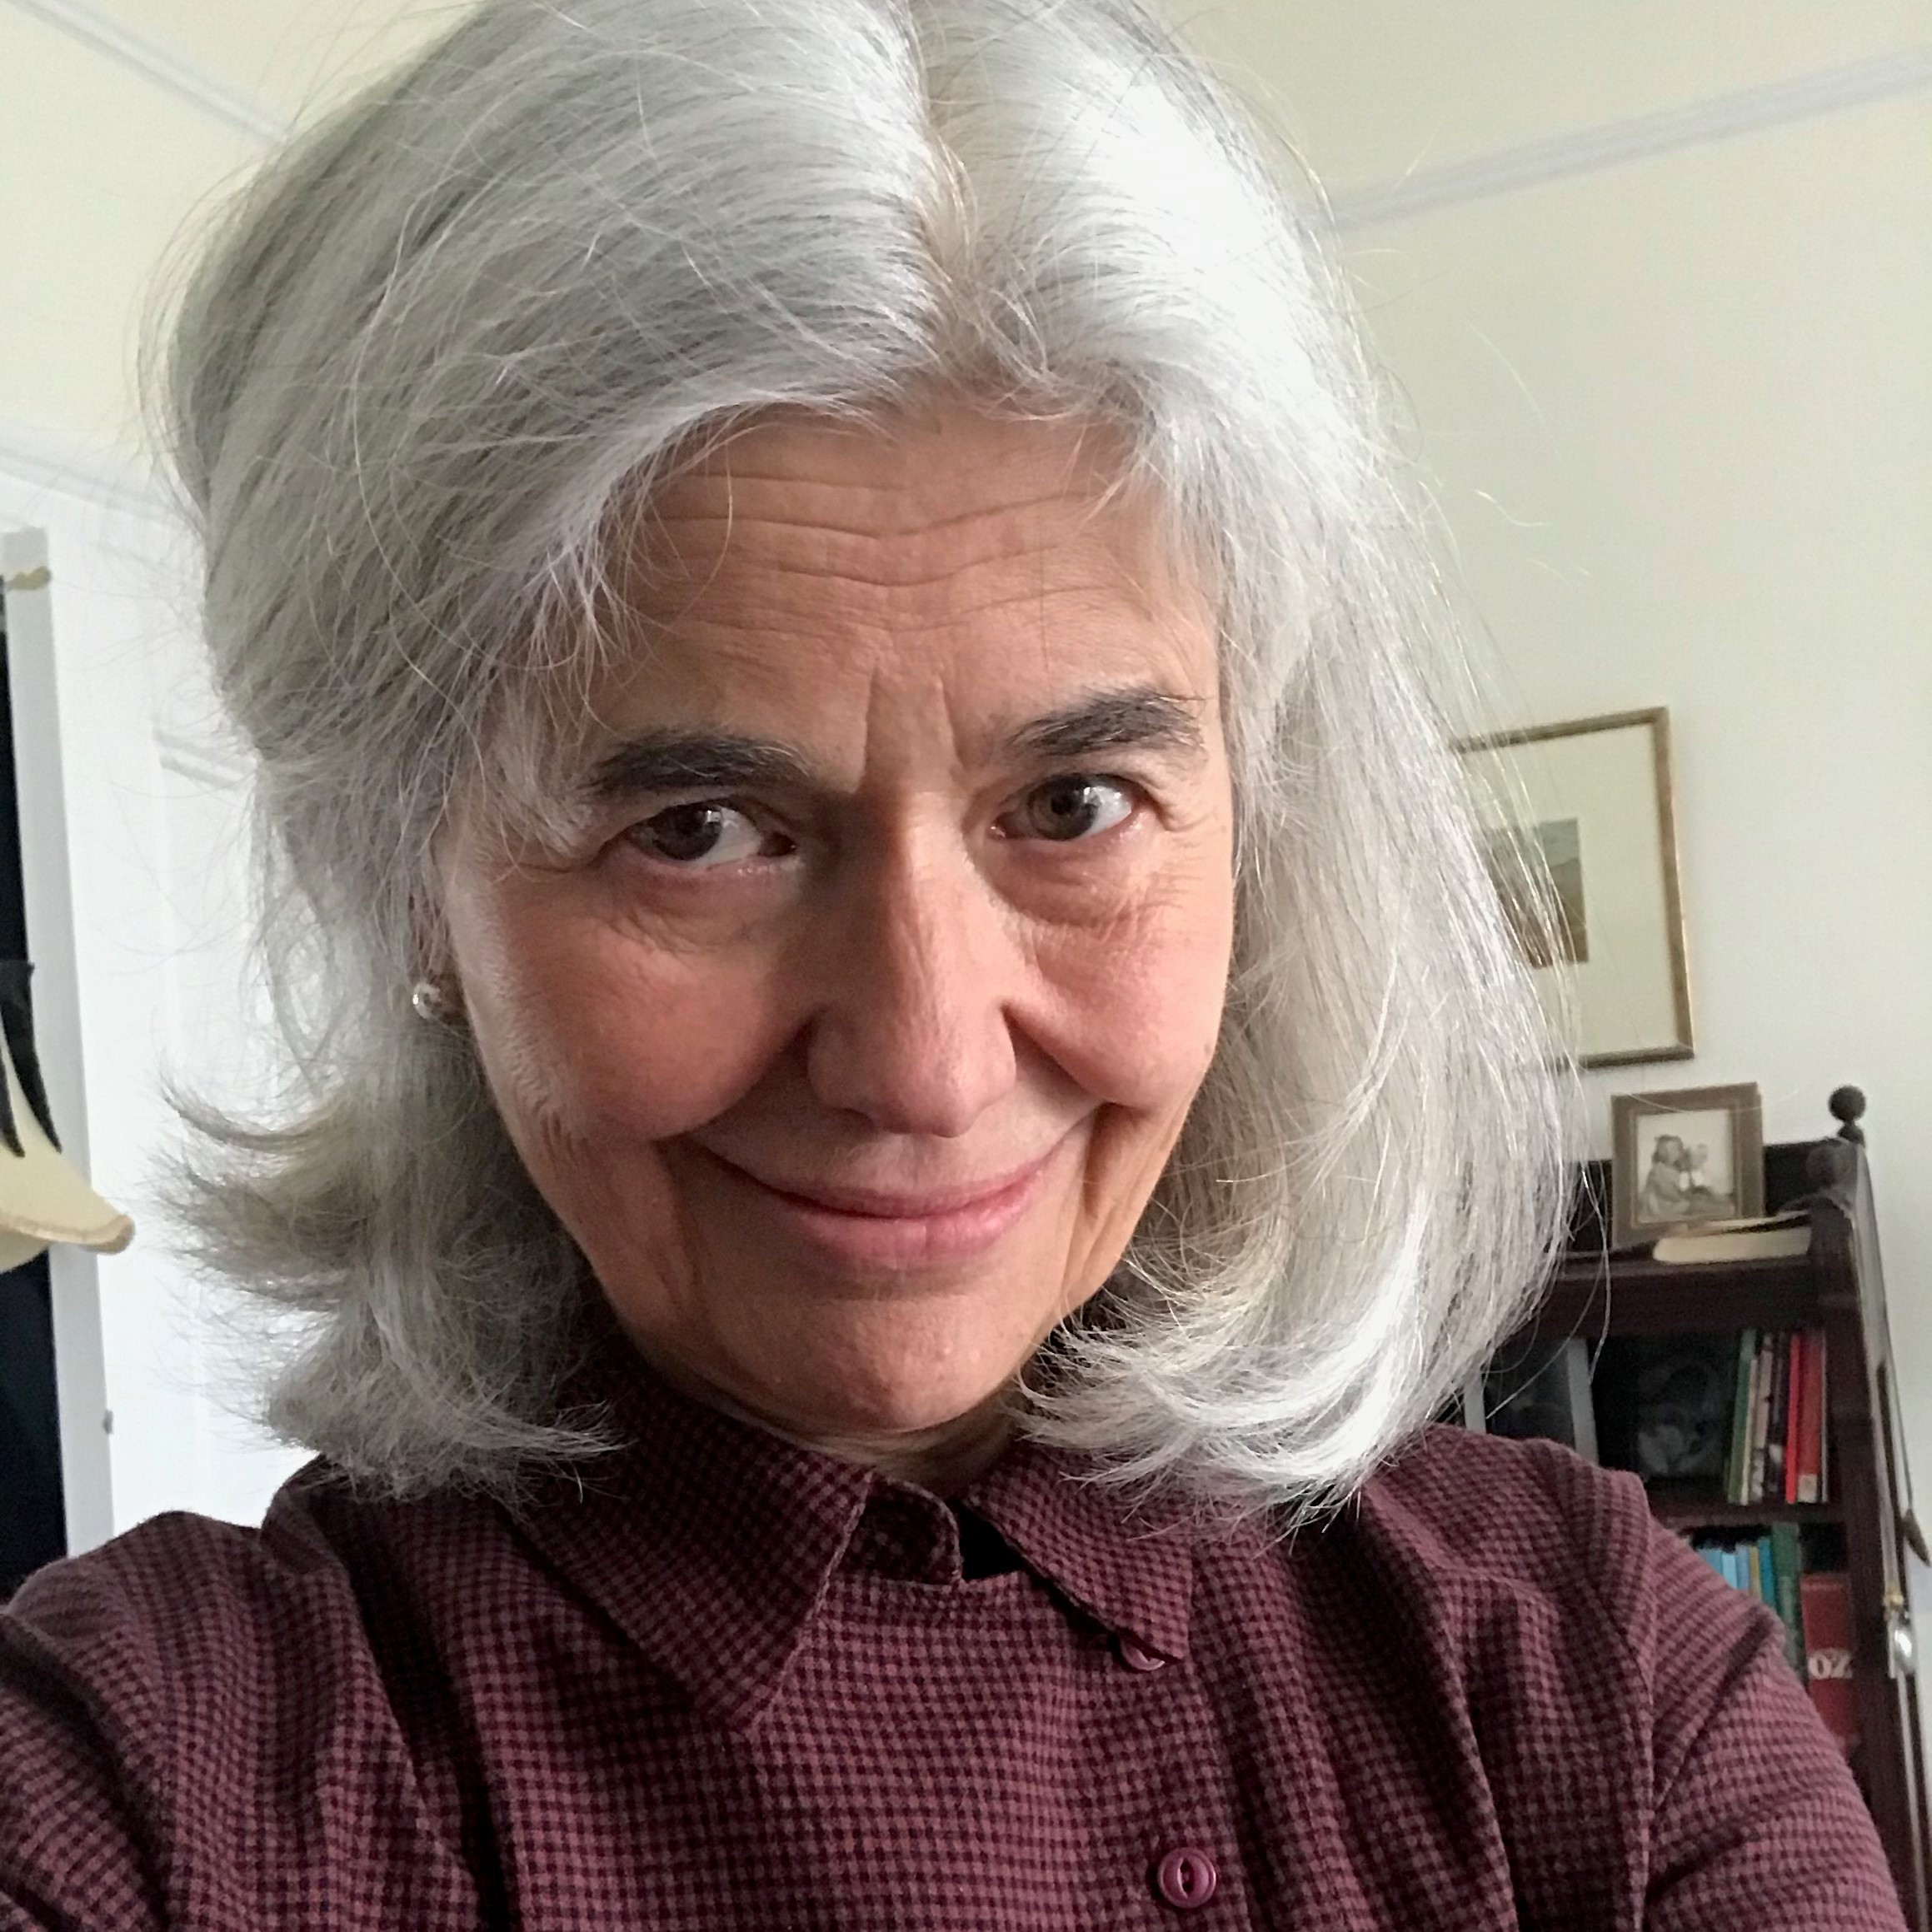 Mary Evans, a white woman with shoulder length grey hair, is smiling centre frame. Behind her is a bookcase and picture frame.